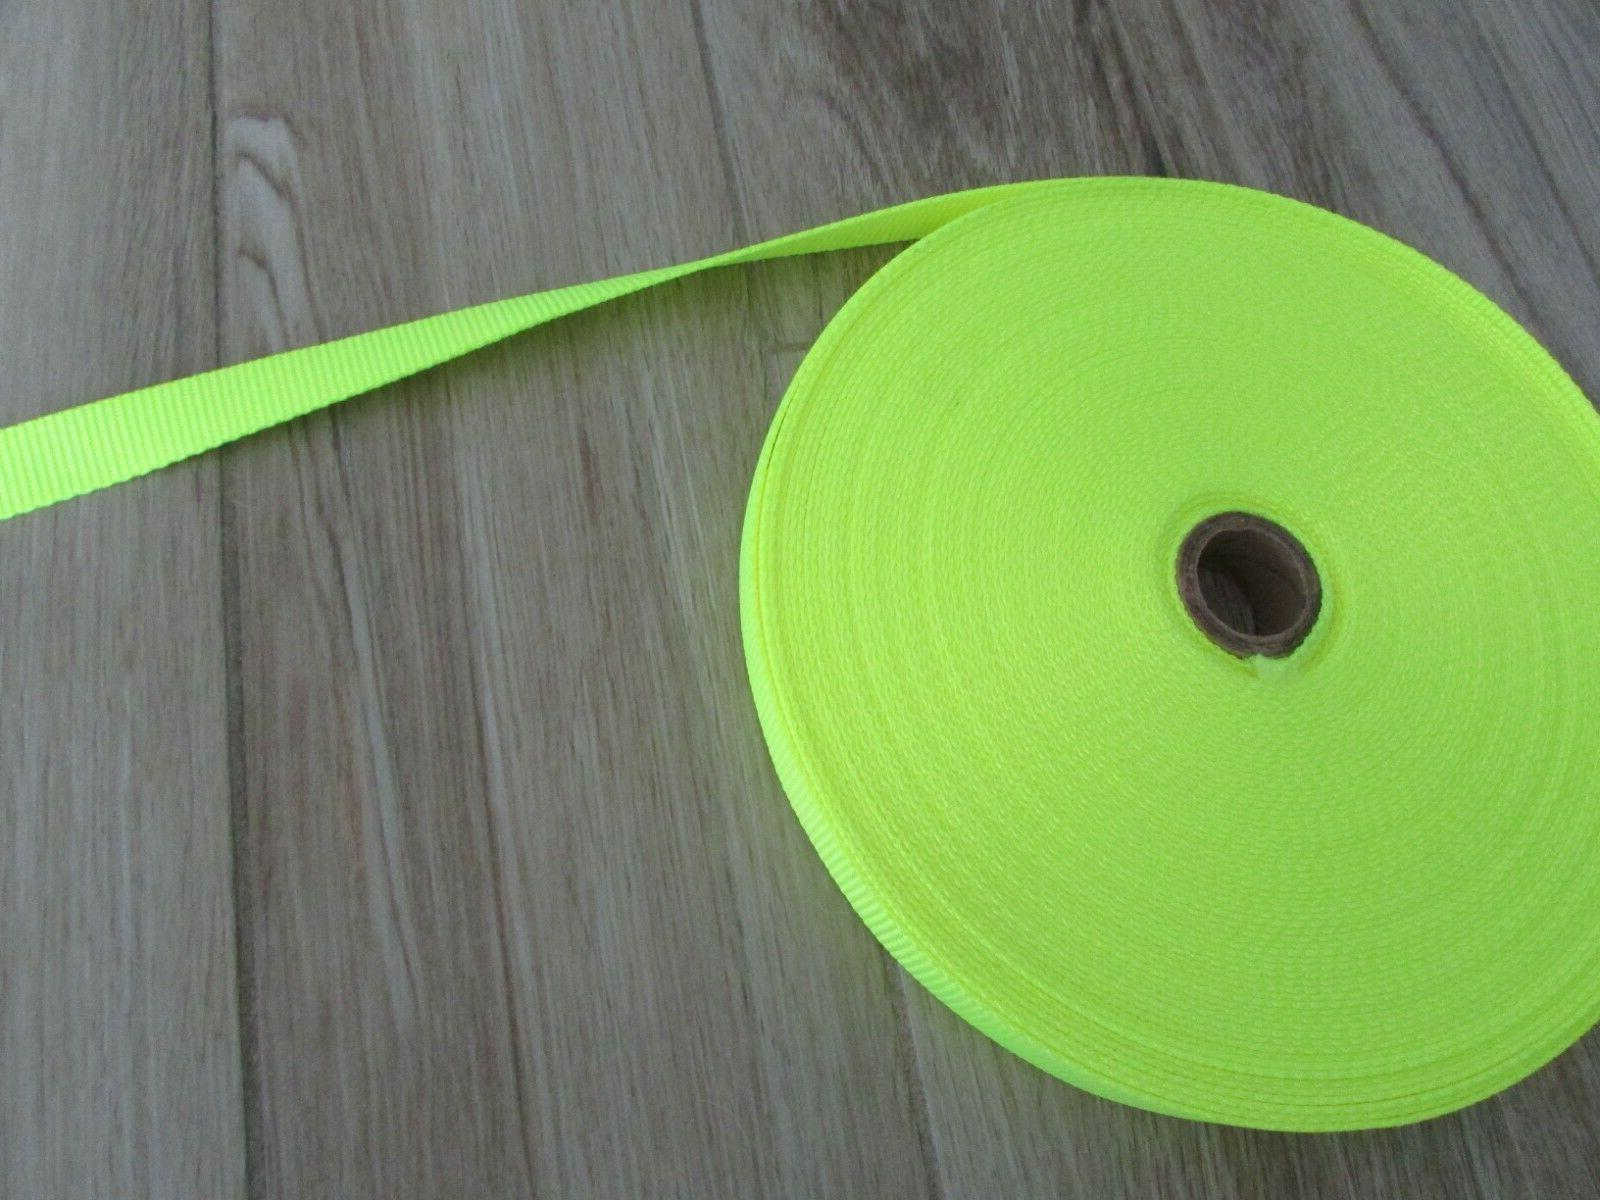 heavy duty nylon strapping 1 wide neon